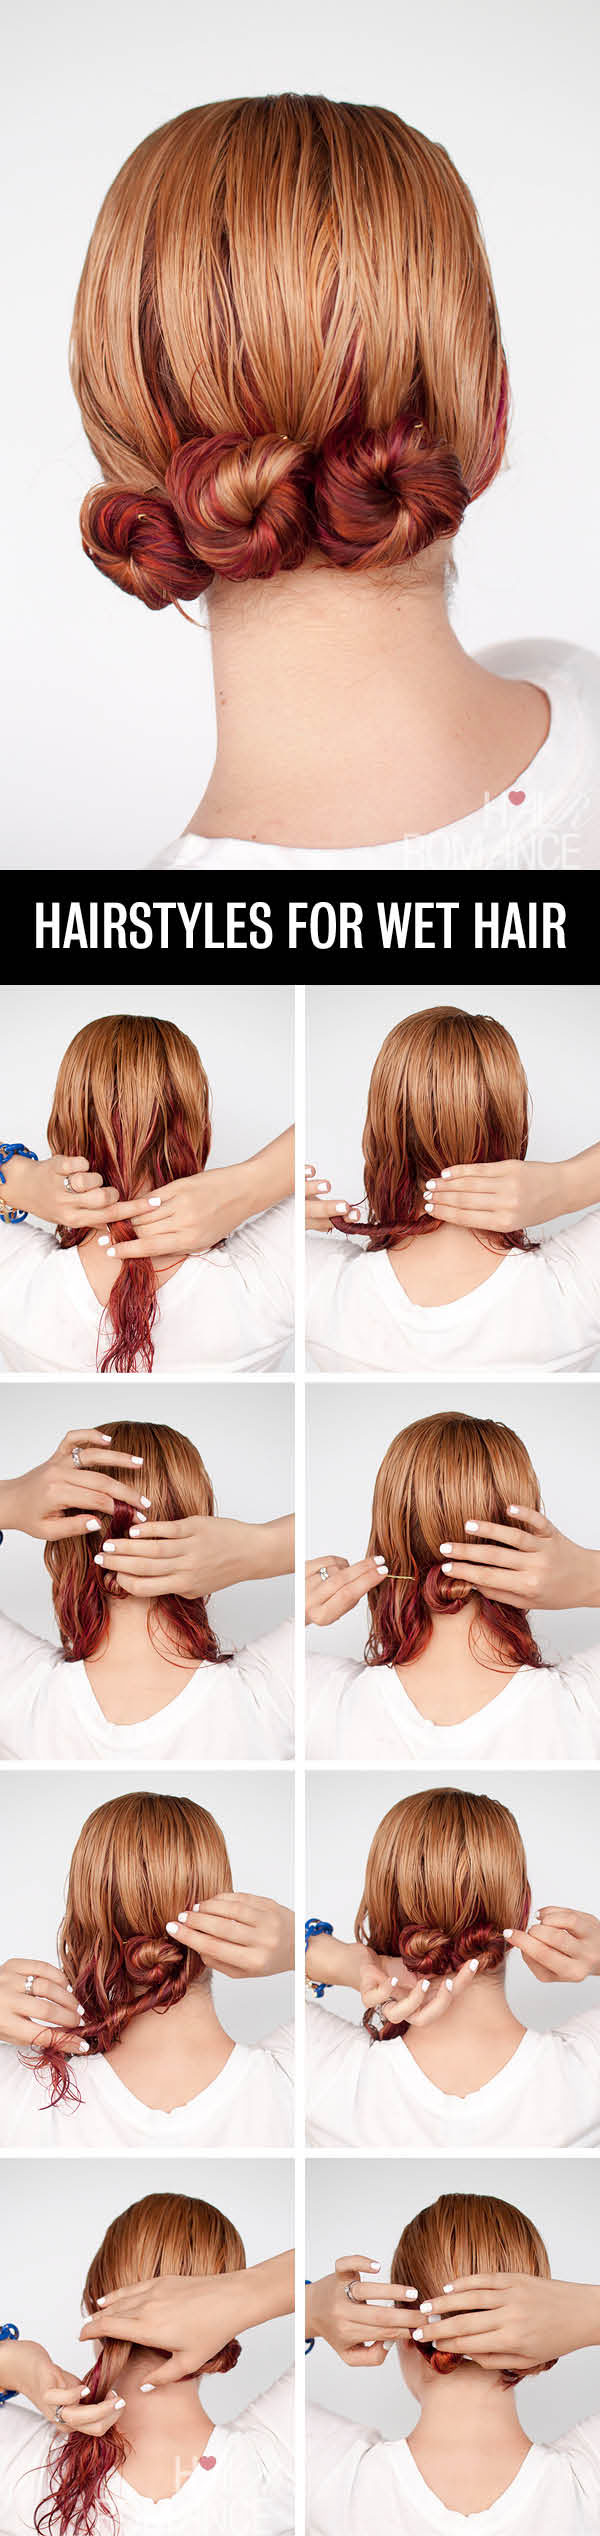 Get ready fast with 7 easy hairstyle tutorials for wet hair - Hair Romance